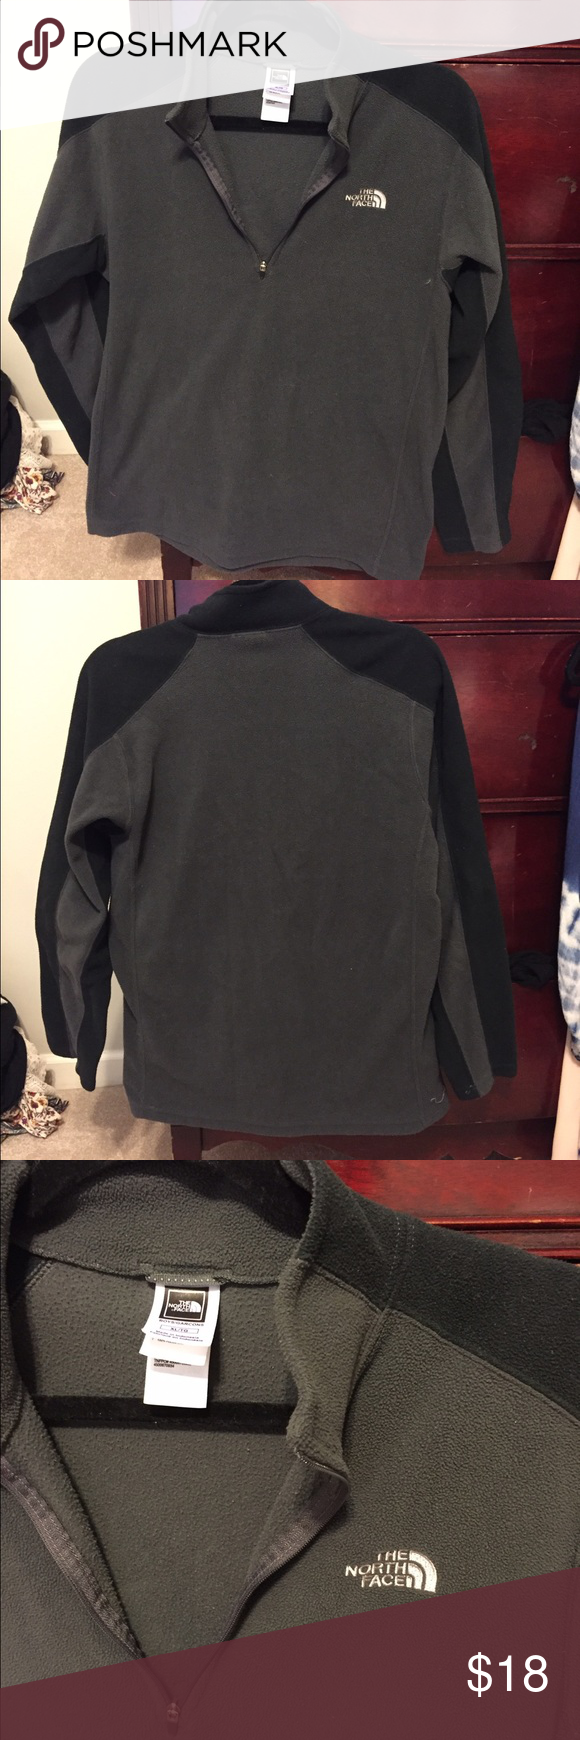 North face grey pullover This is actually a kids but can fit an adult small/xs! Gently used, good to have for colder nights  smoke/pet free home North Face Jackets & Coats